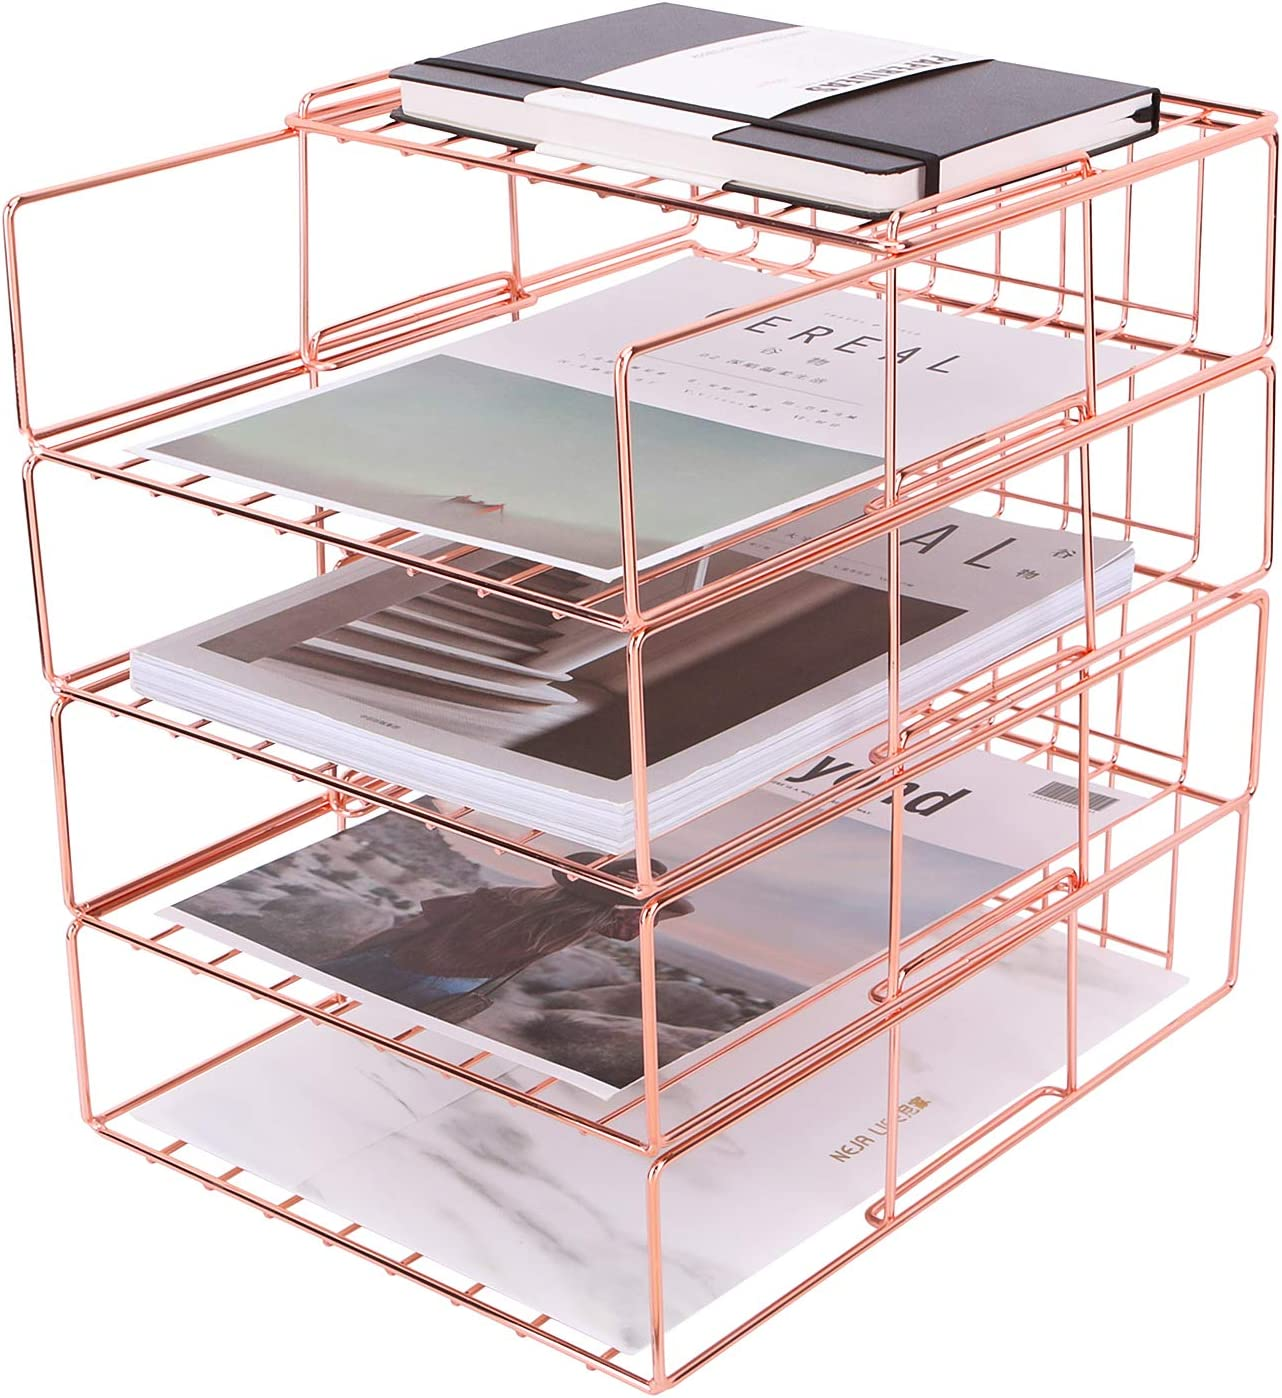 Nugorise Stackable File Tray 4 Tier Paper Organizer Tray Wire Desk File Sorter Shelf For Mail Magazine Document Folder Book And More Rose Gold Kitchen Dining